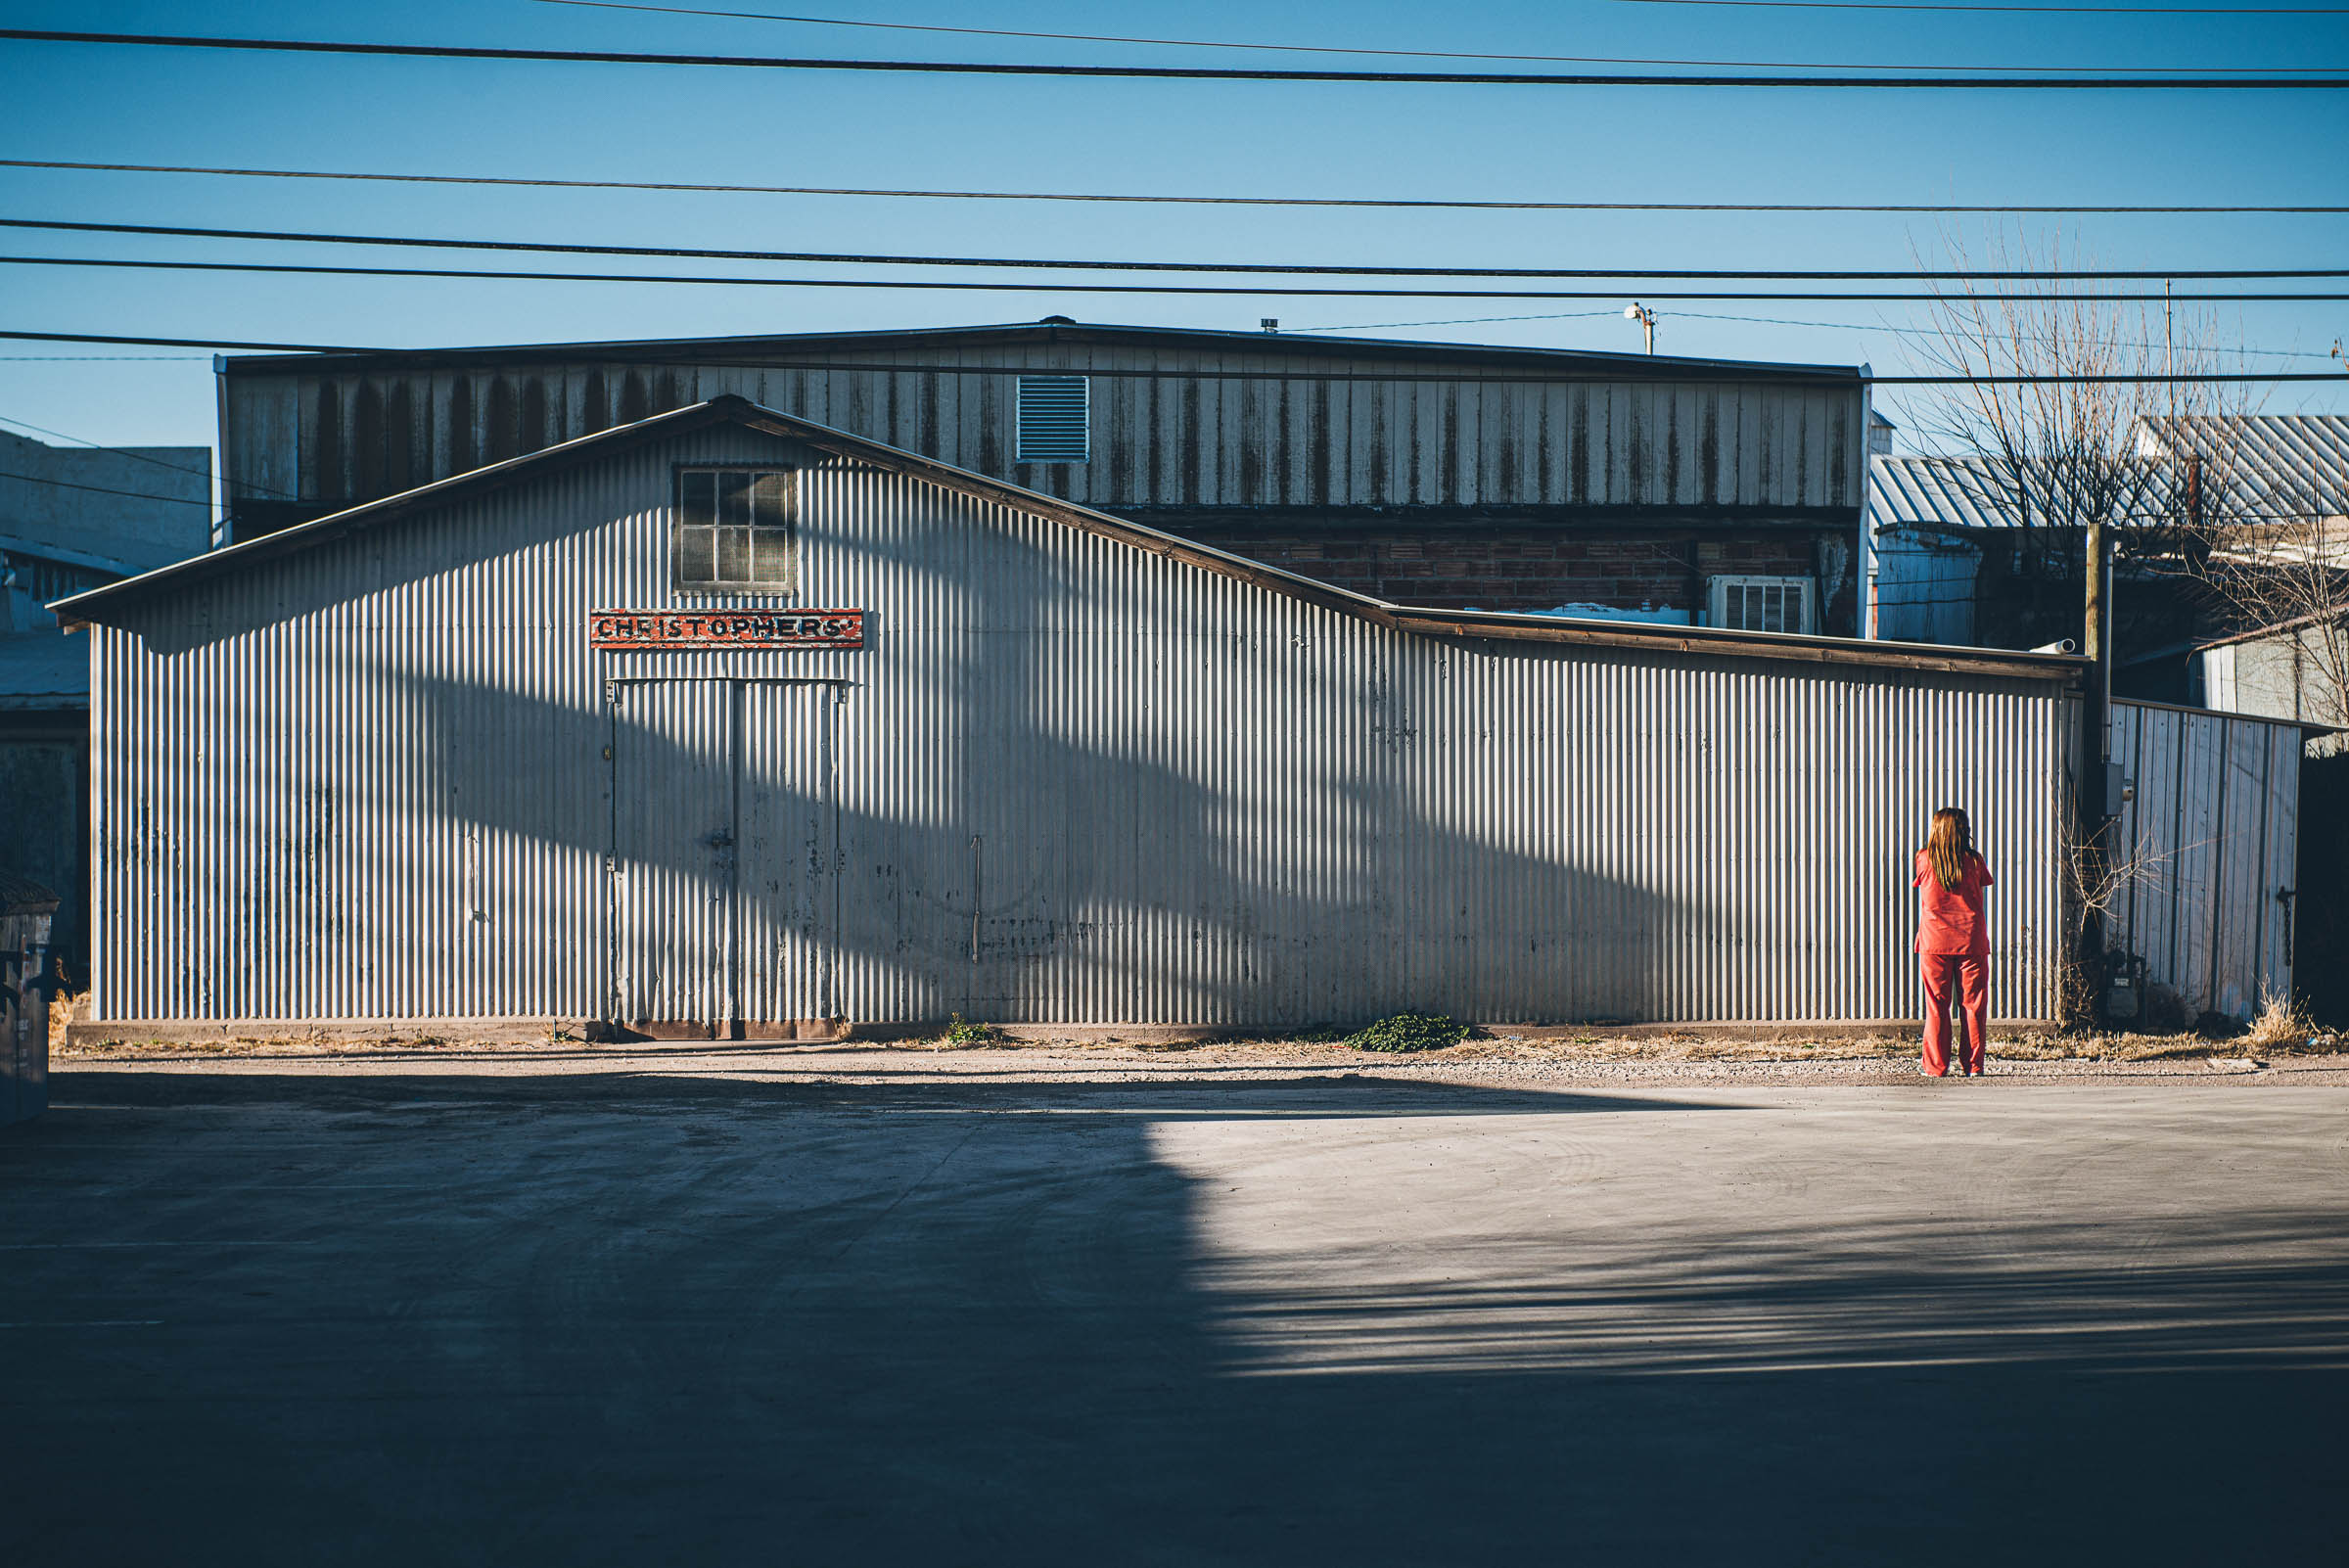 Lone woman in pink against industrial backdrop  -Marfa-Texas